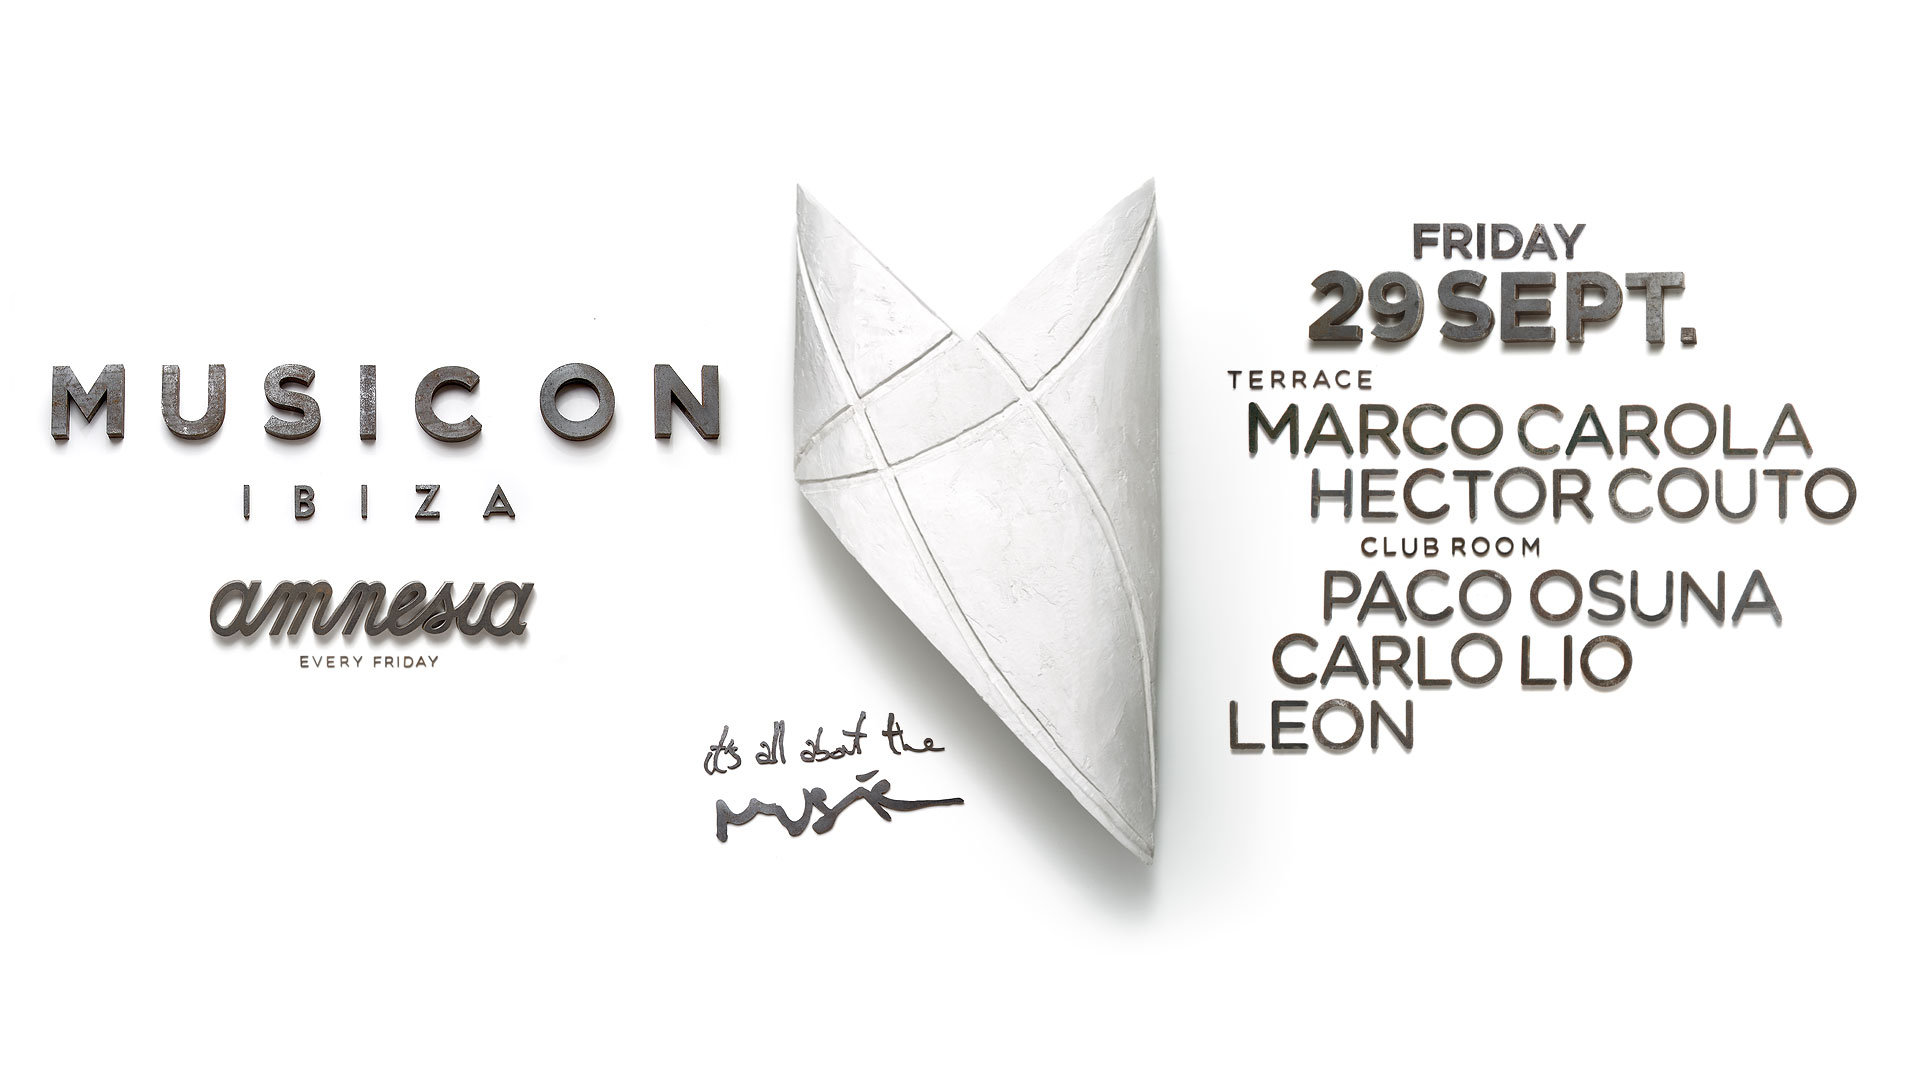 Music On this Friday: Marco Carola, Paco Osuna, Carlo Lio, Hector Couto and Leon